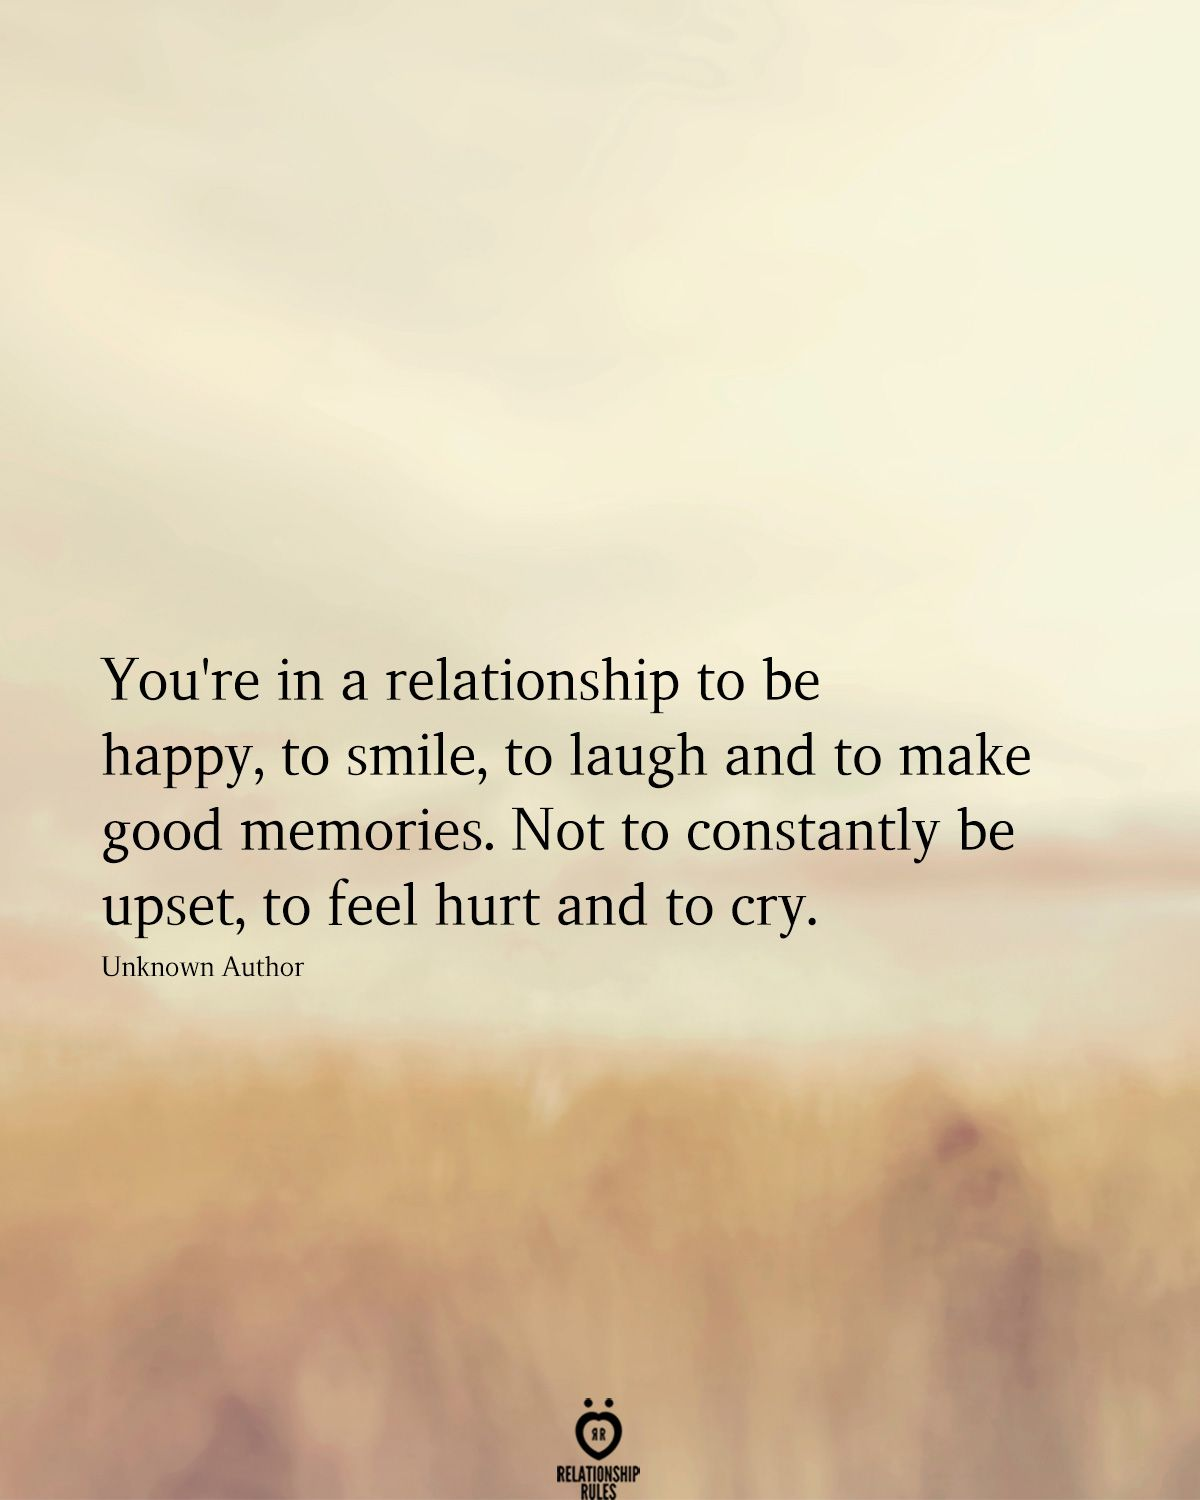 You're In A Relationship To Be Happy, To Smile, To Laugh And To Make Good Memories